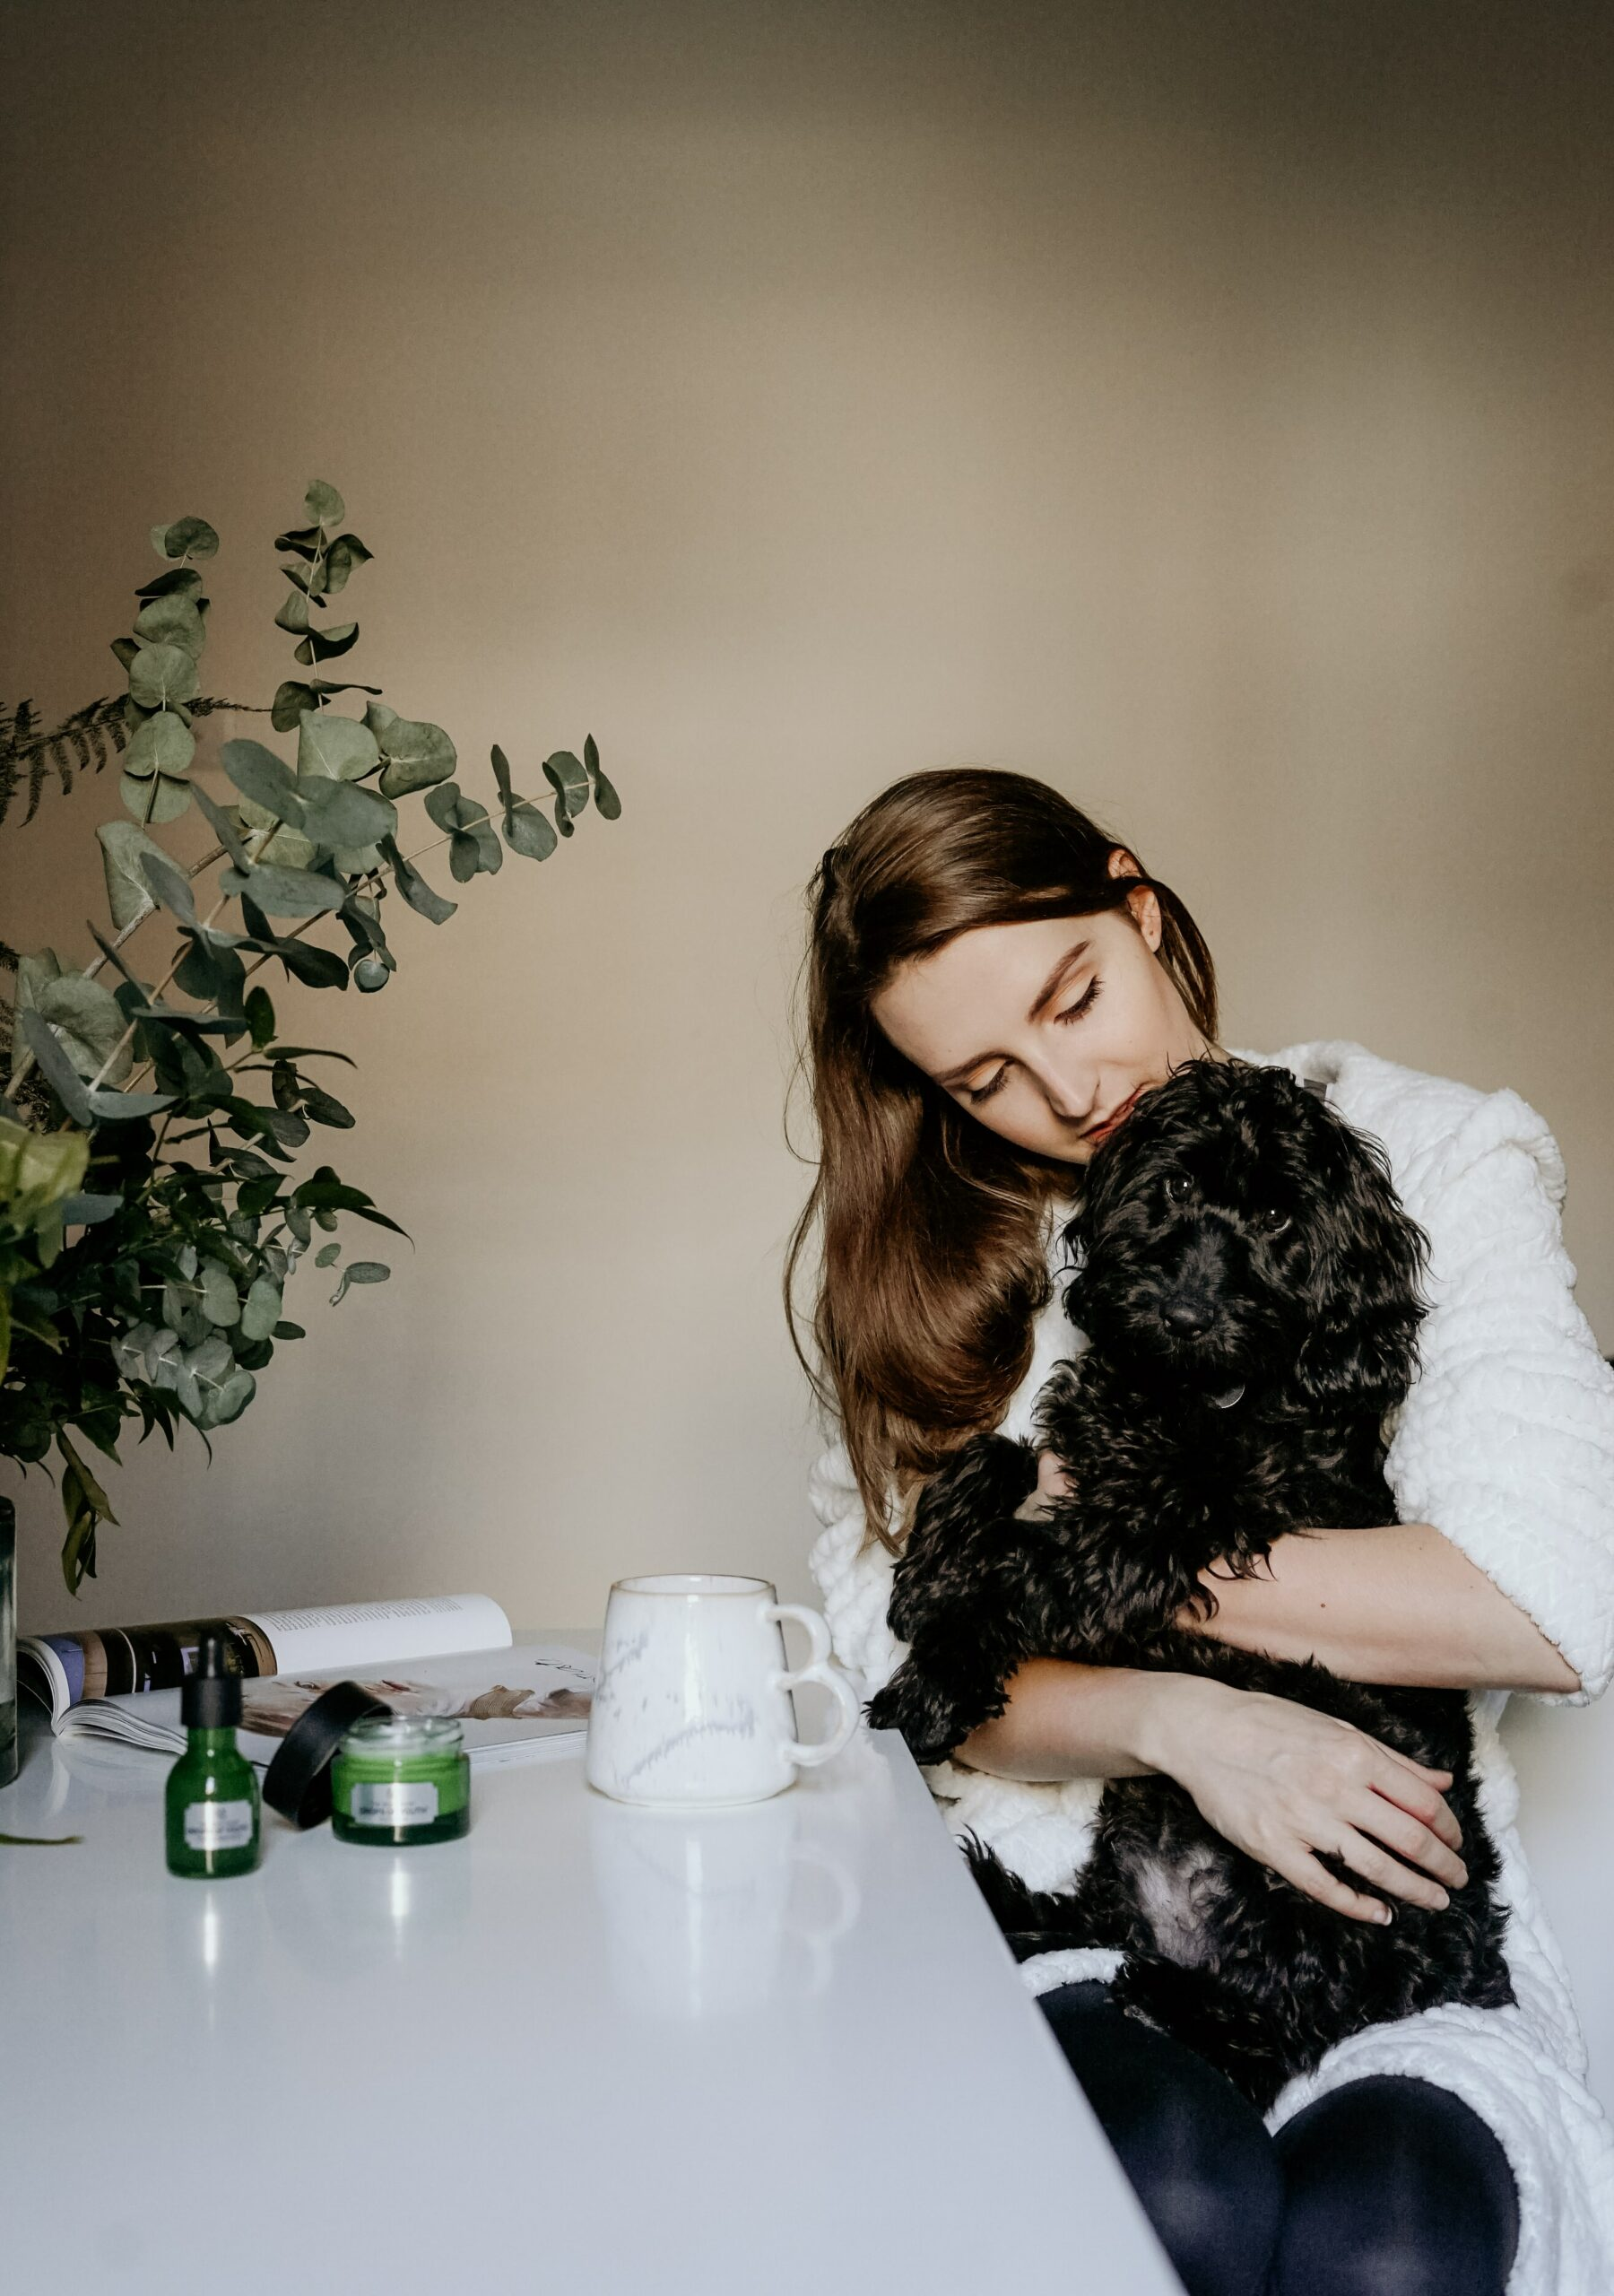 New Pet and New Business: Key Strategies to Making Both Work